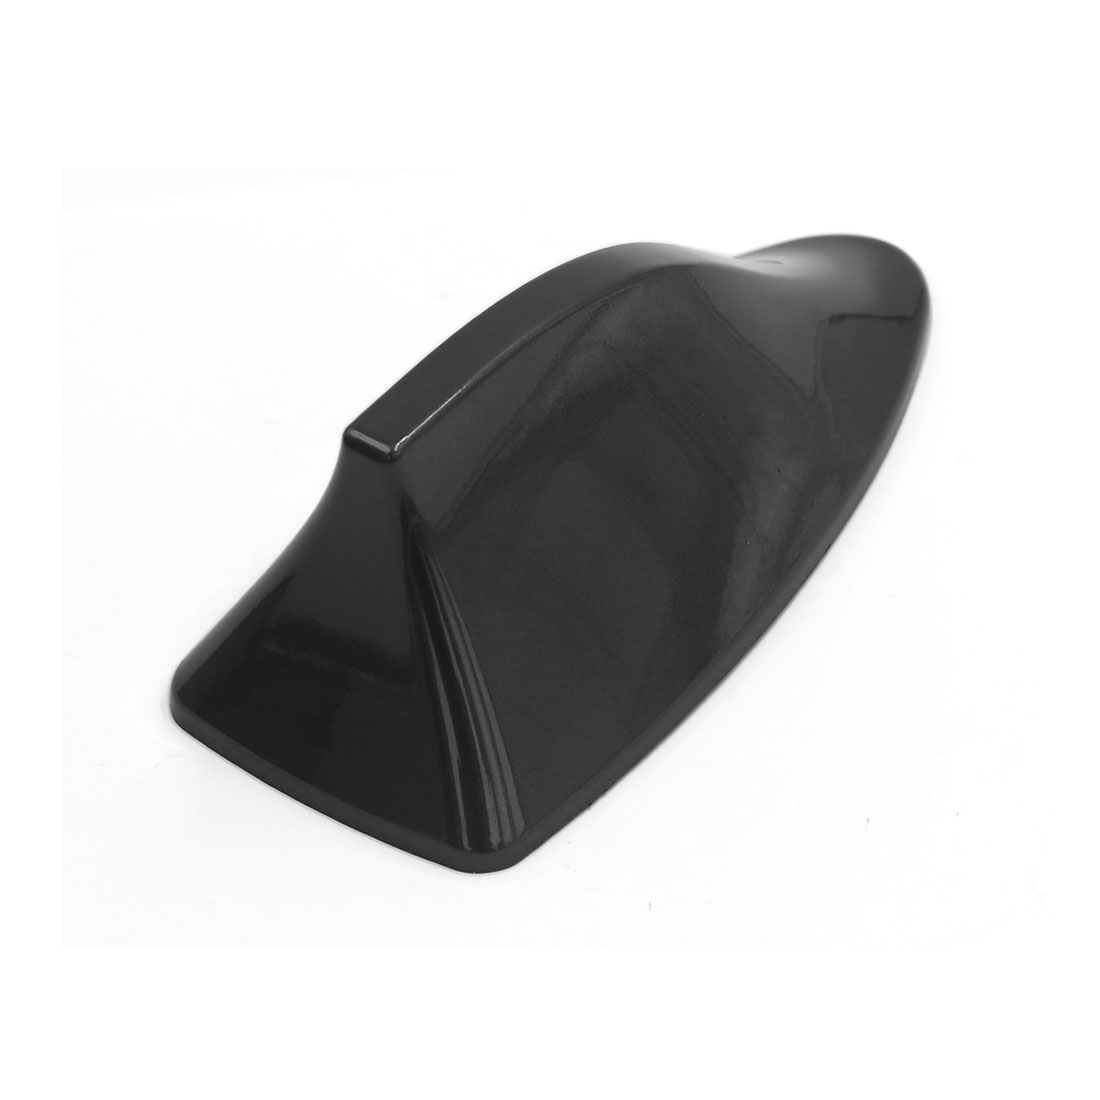 6.7inch Long Shark Fin Design AM/FM Aerial Radio Signal Antenna for BMW - image 2 of 3